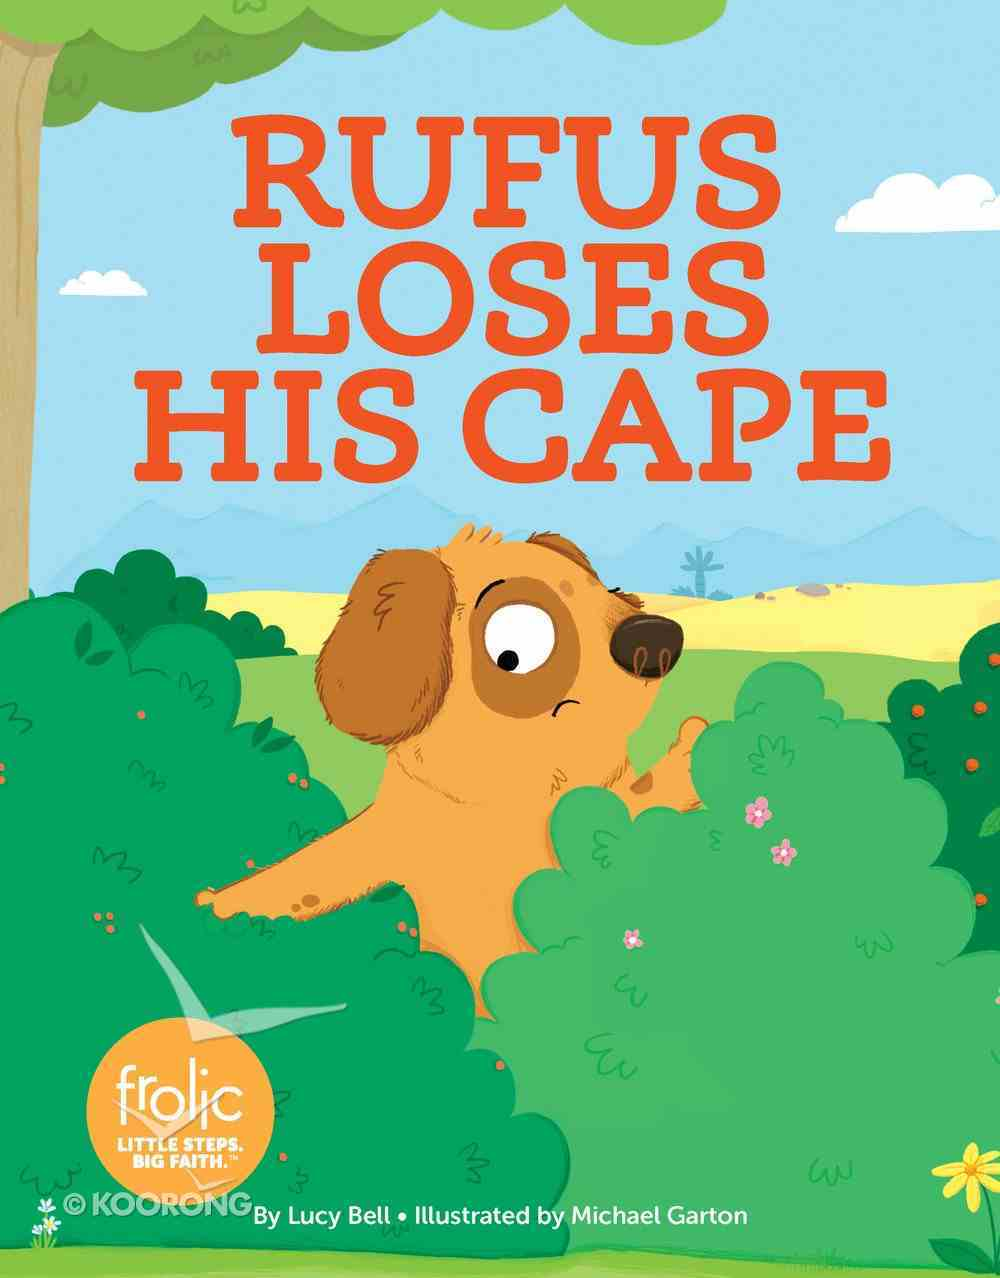 Rufus Loses His Cape: A Book About Asking For Help (Frolic Series) Hardback